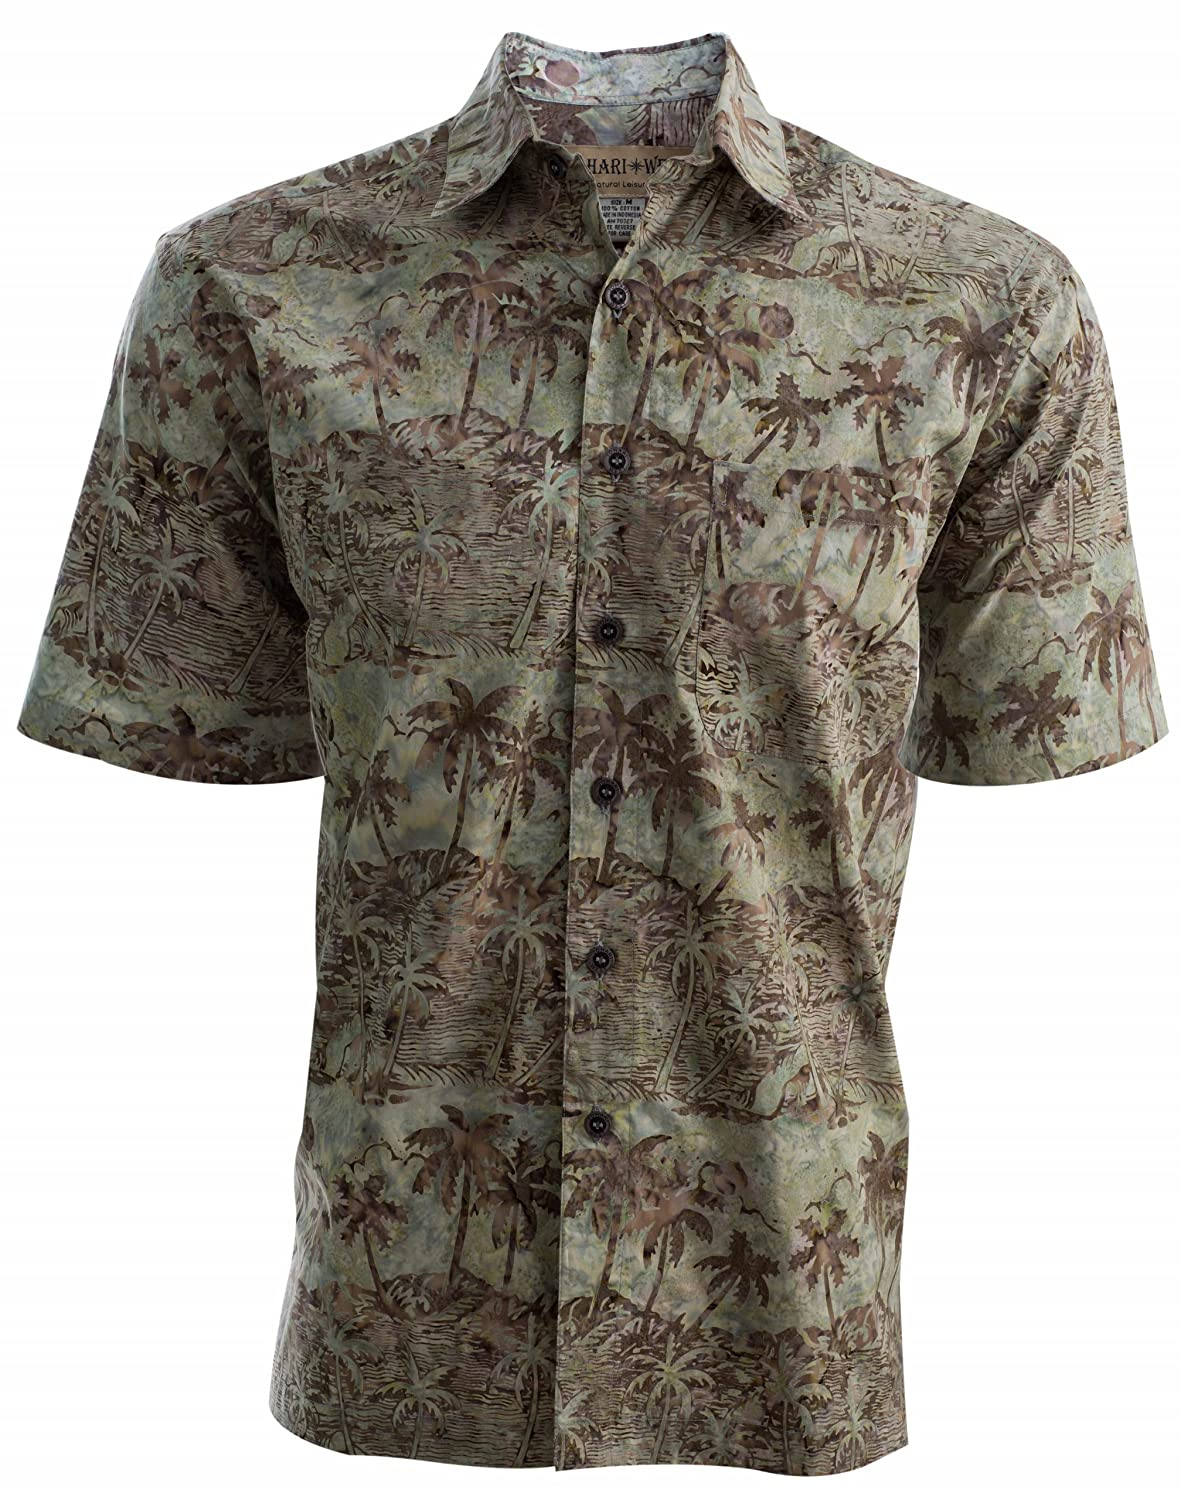 a1752f6cb7a7 HAND PRINTED BATIK DESIGN – Each shirt is individually printed by hand with  batik stamps in ...